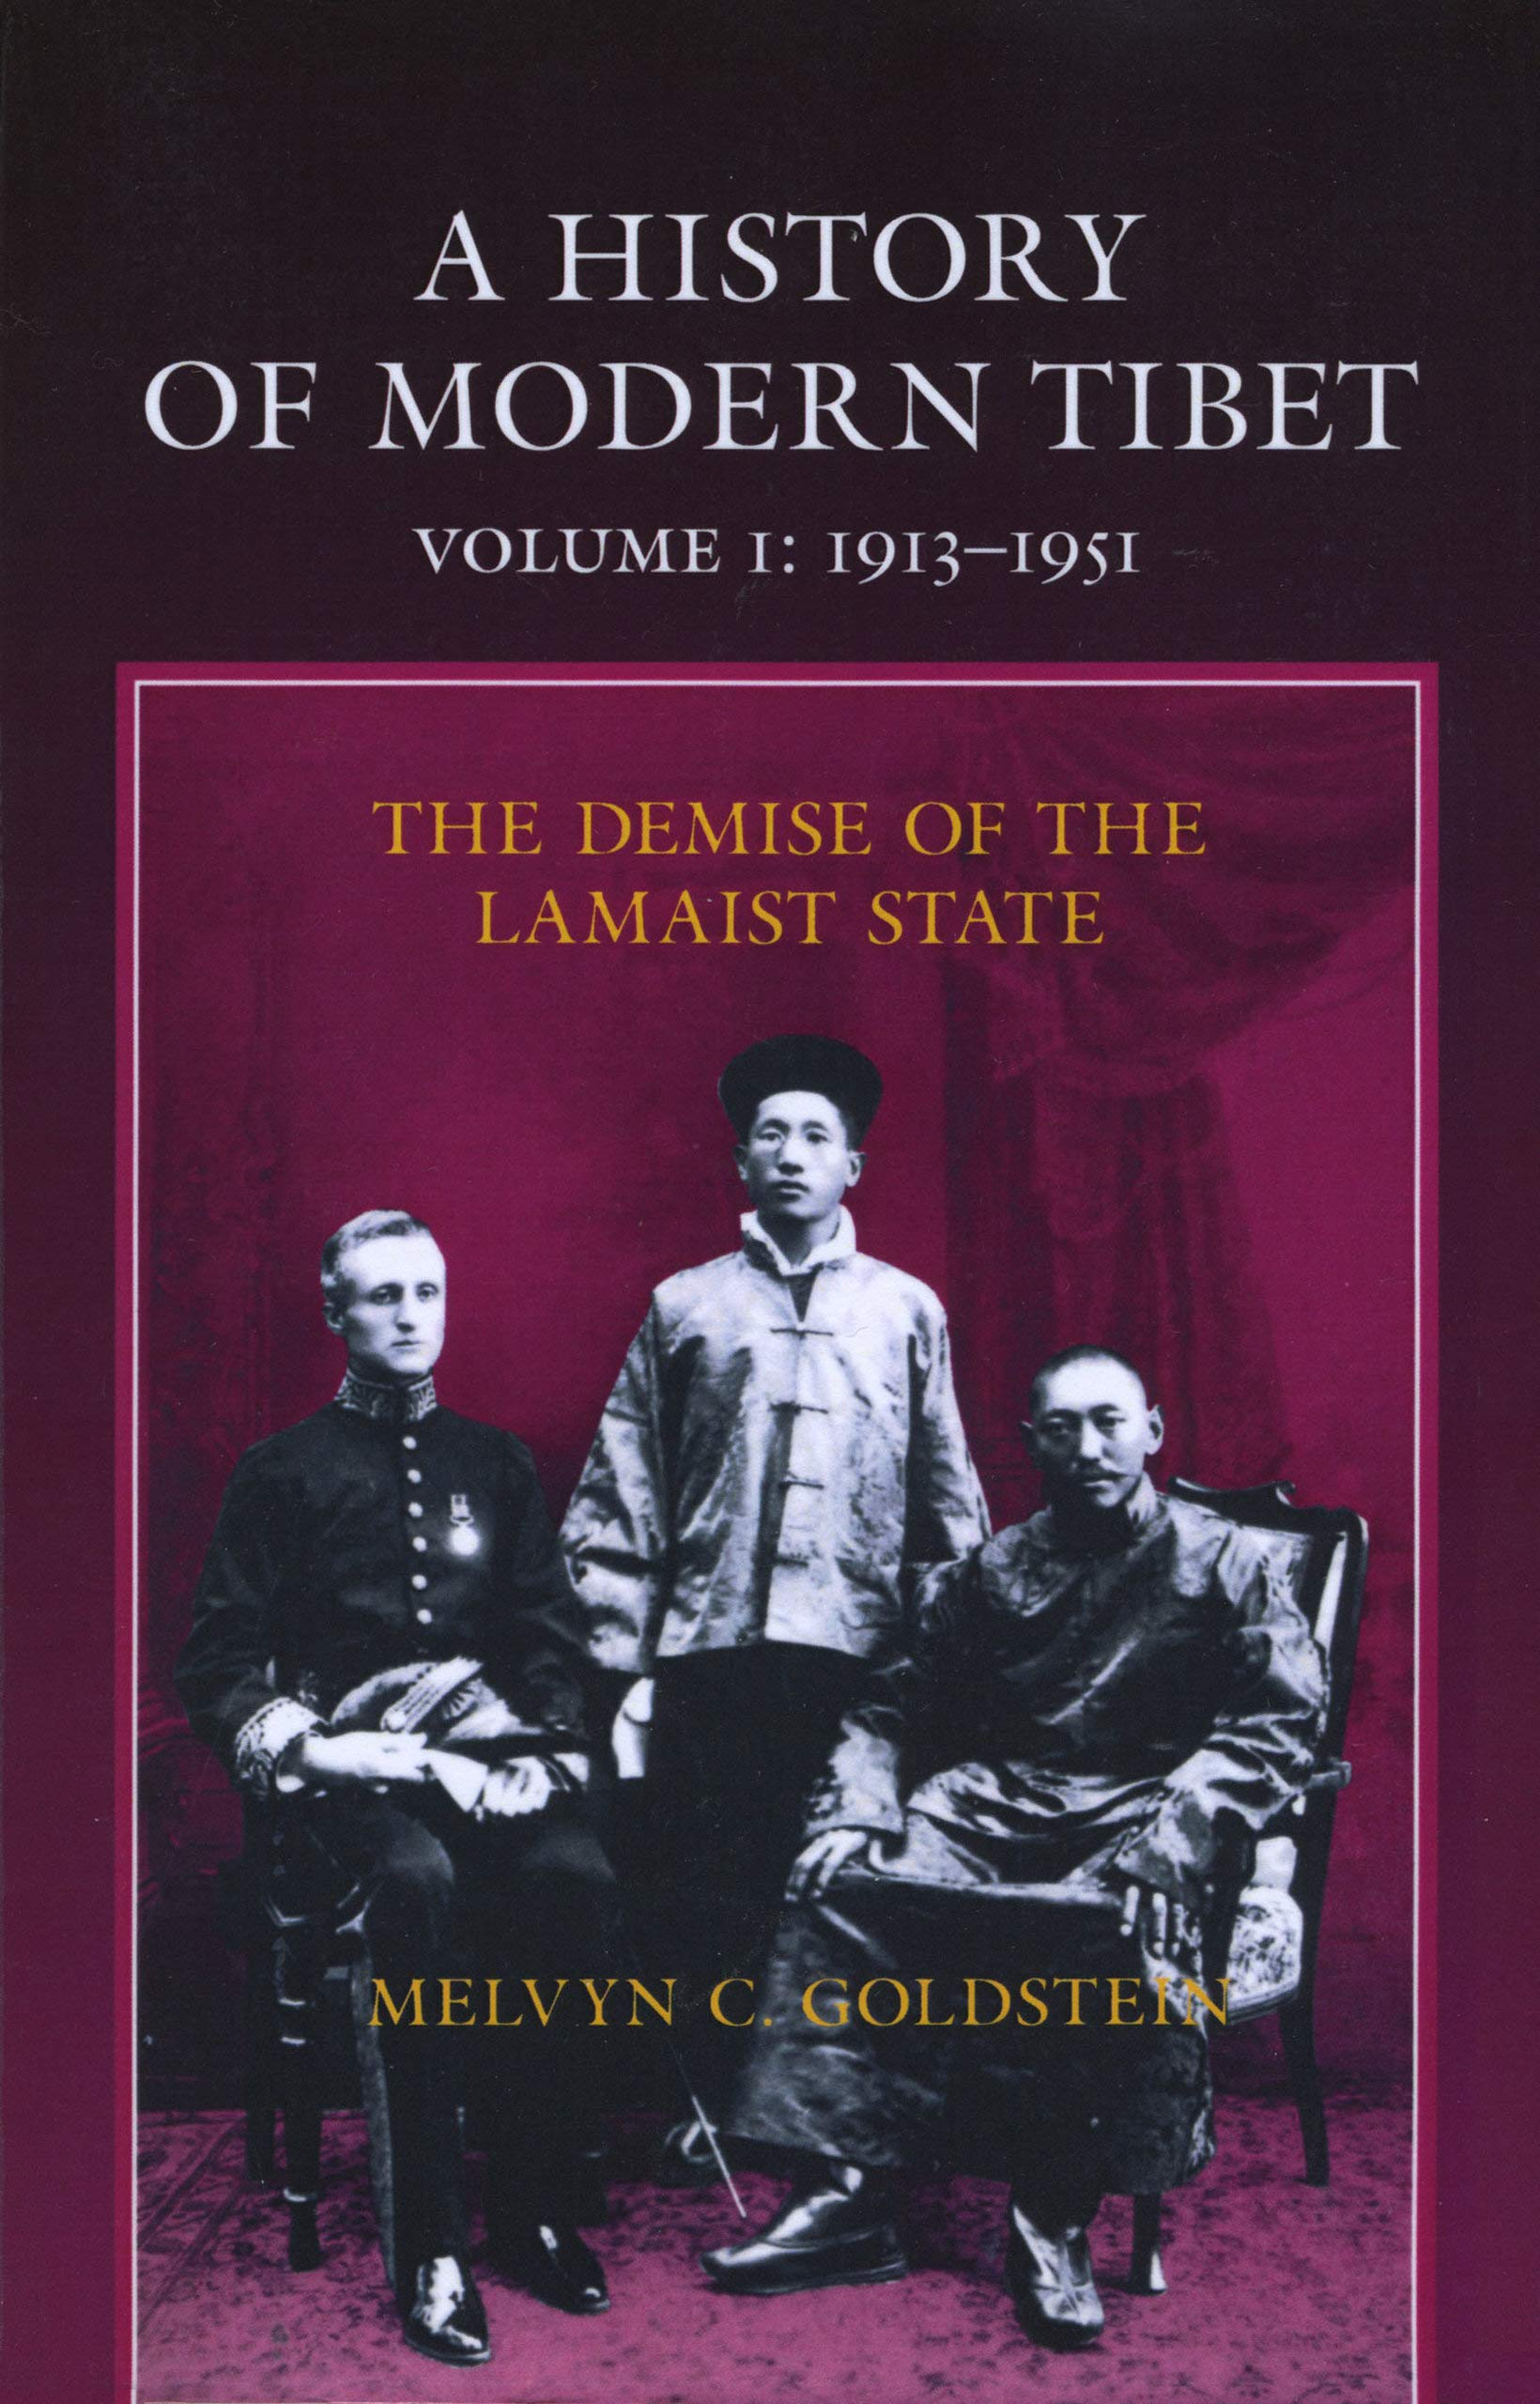 In Rapga's Library: the Texts and Times of a Rebel Tibetan Intellectual